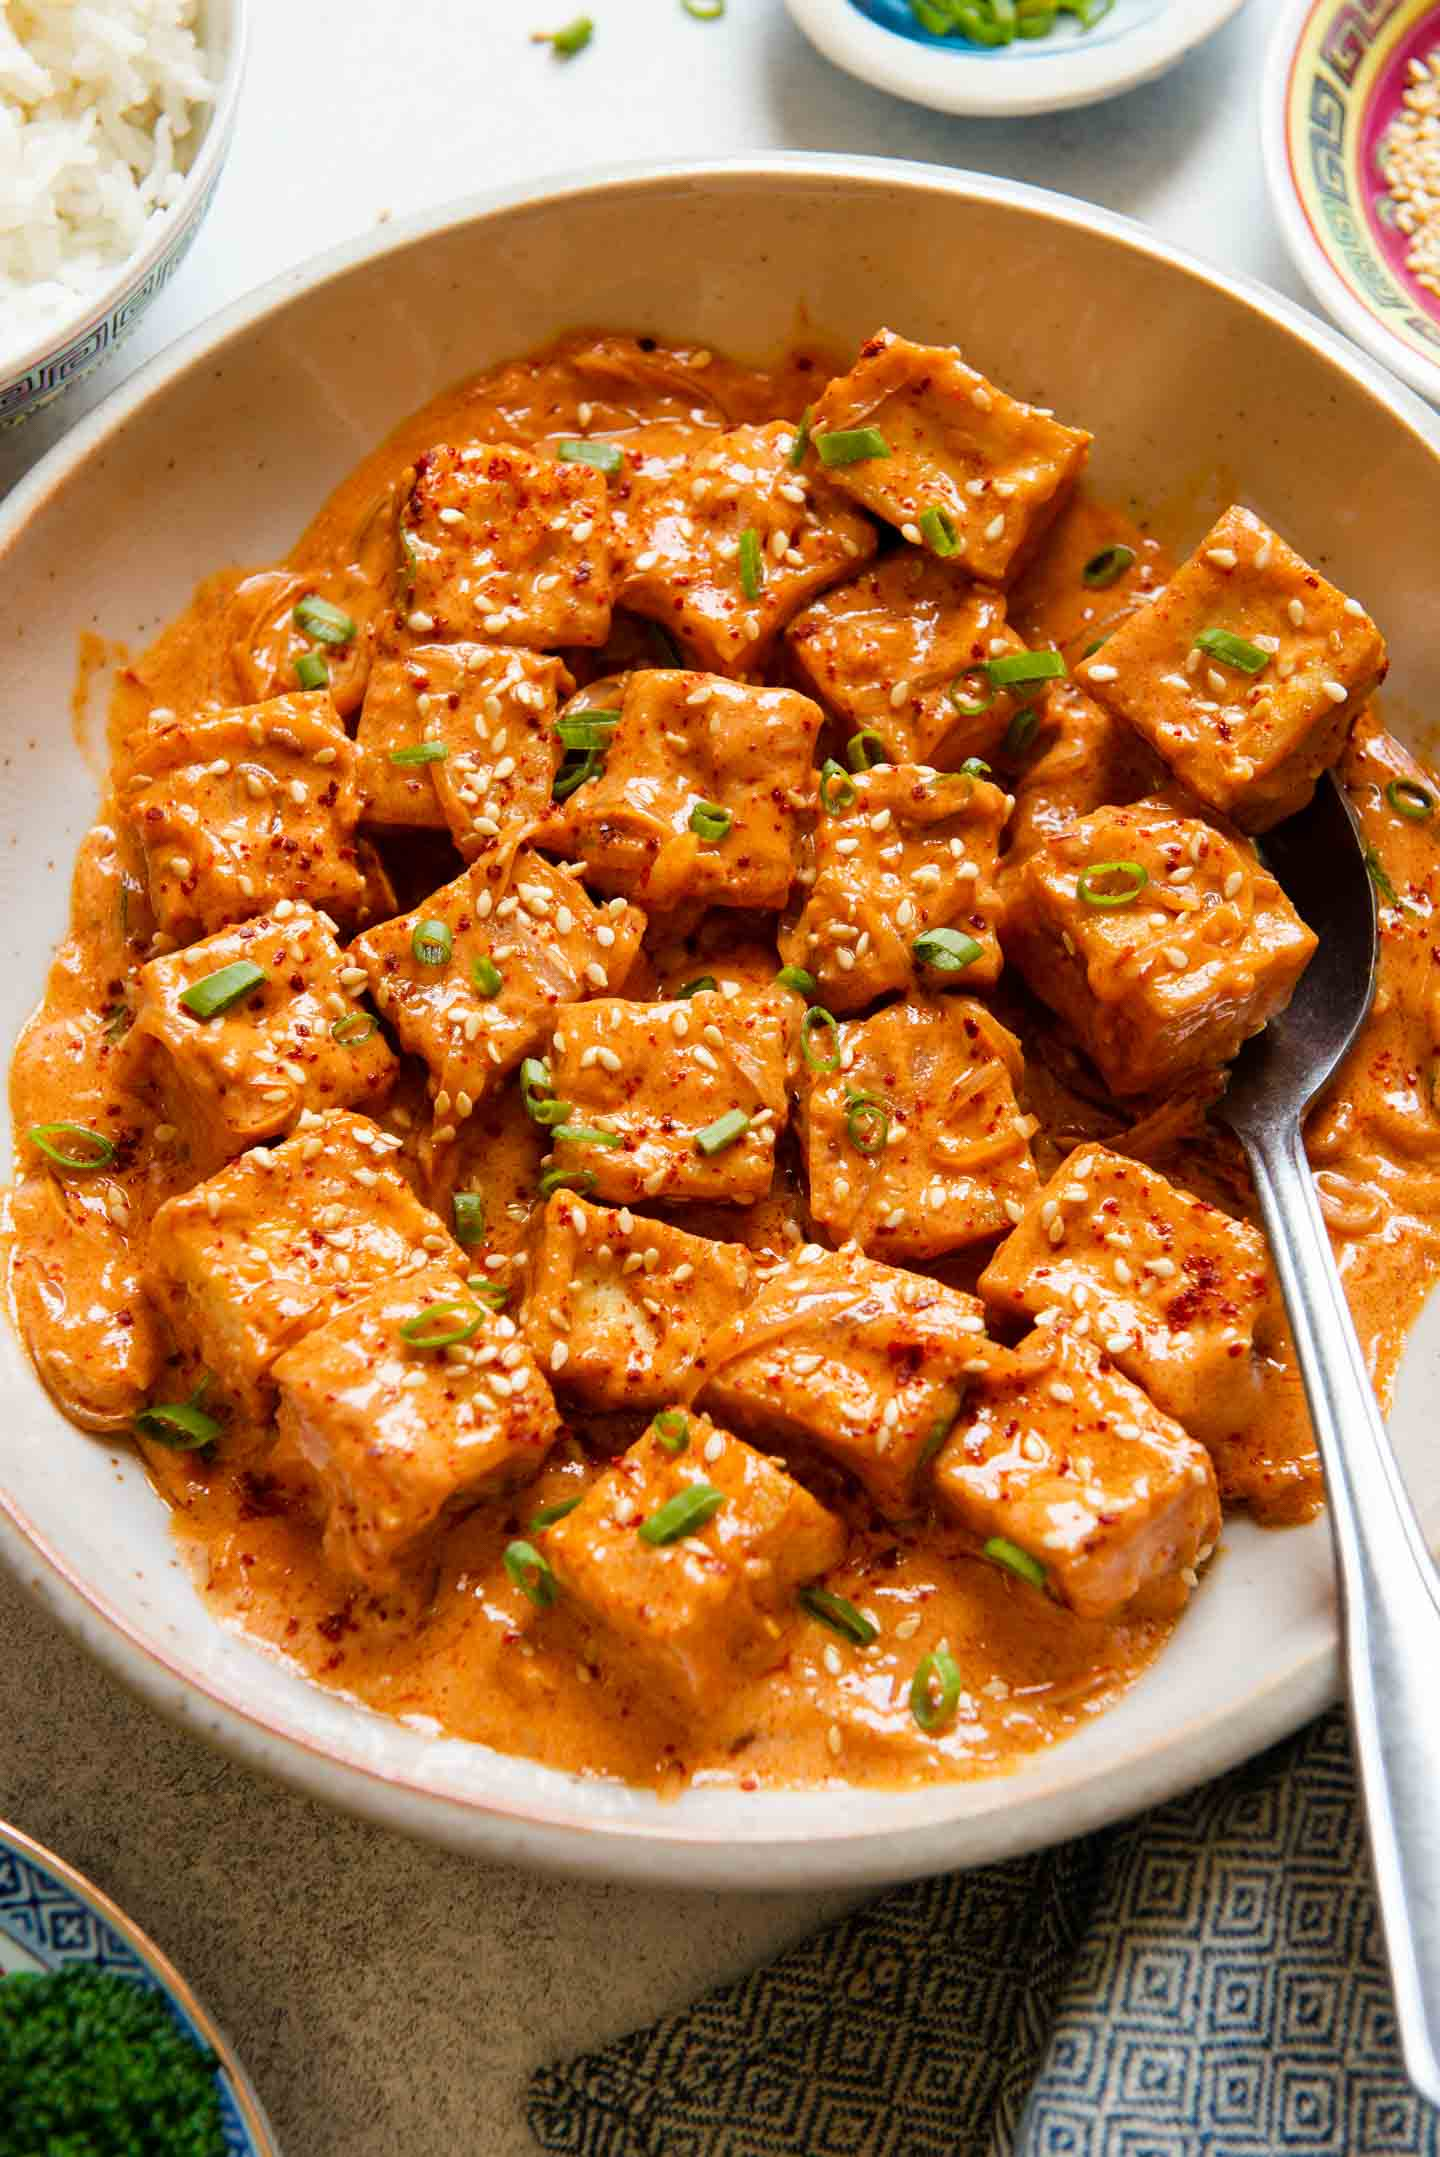 Spicy Tofu with Creamy Coconut Sauce